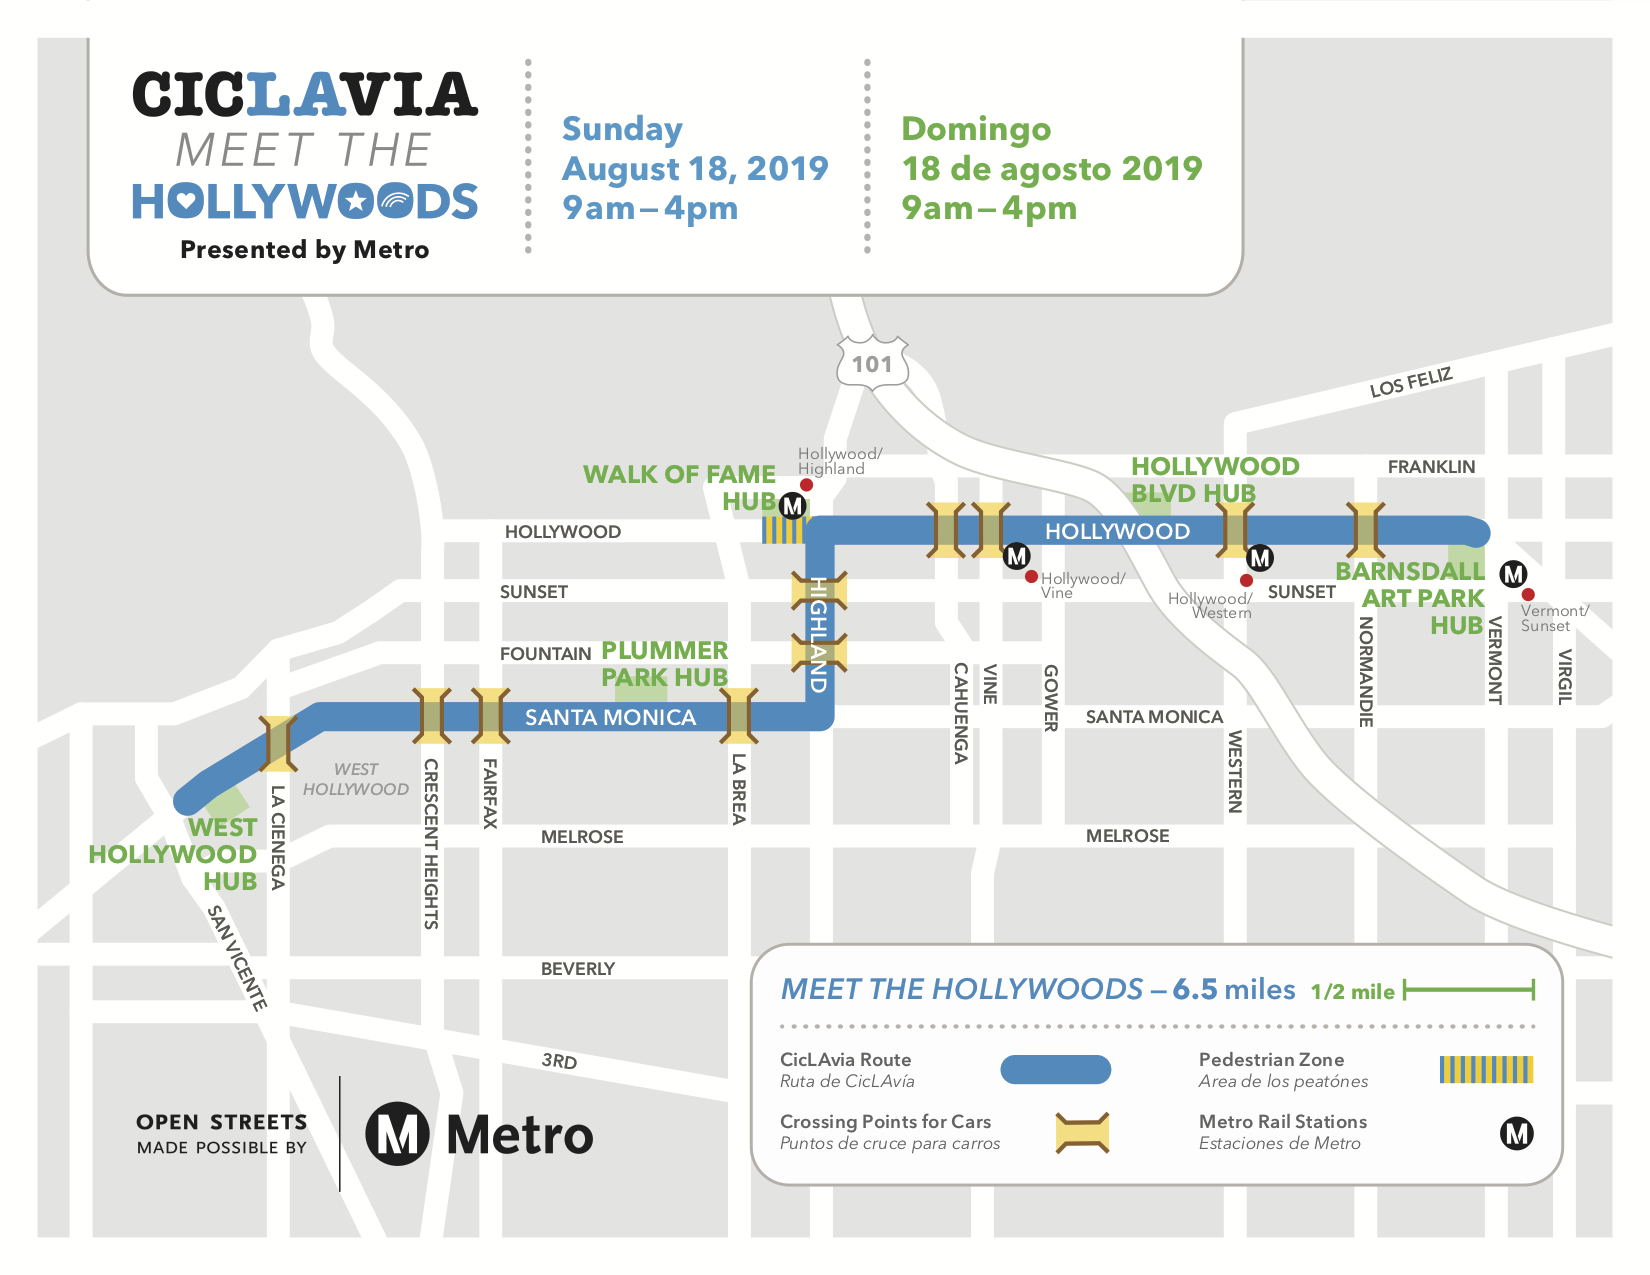 ciclavia_081819_hollywood_map_5